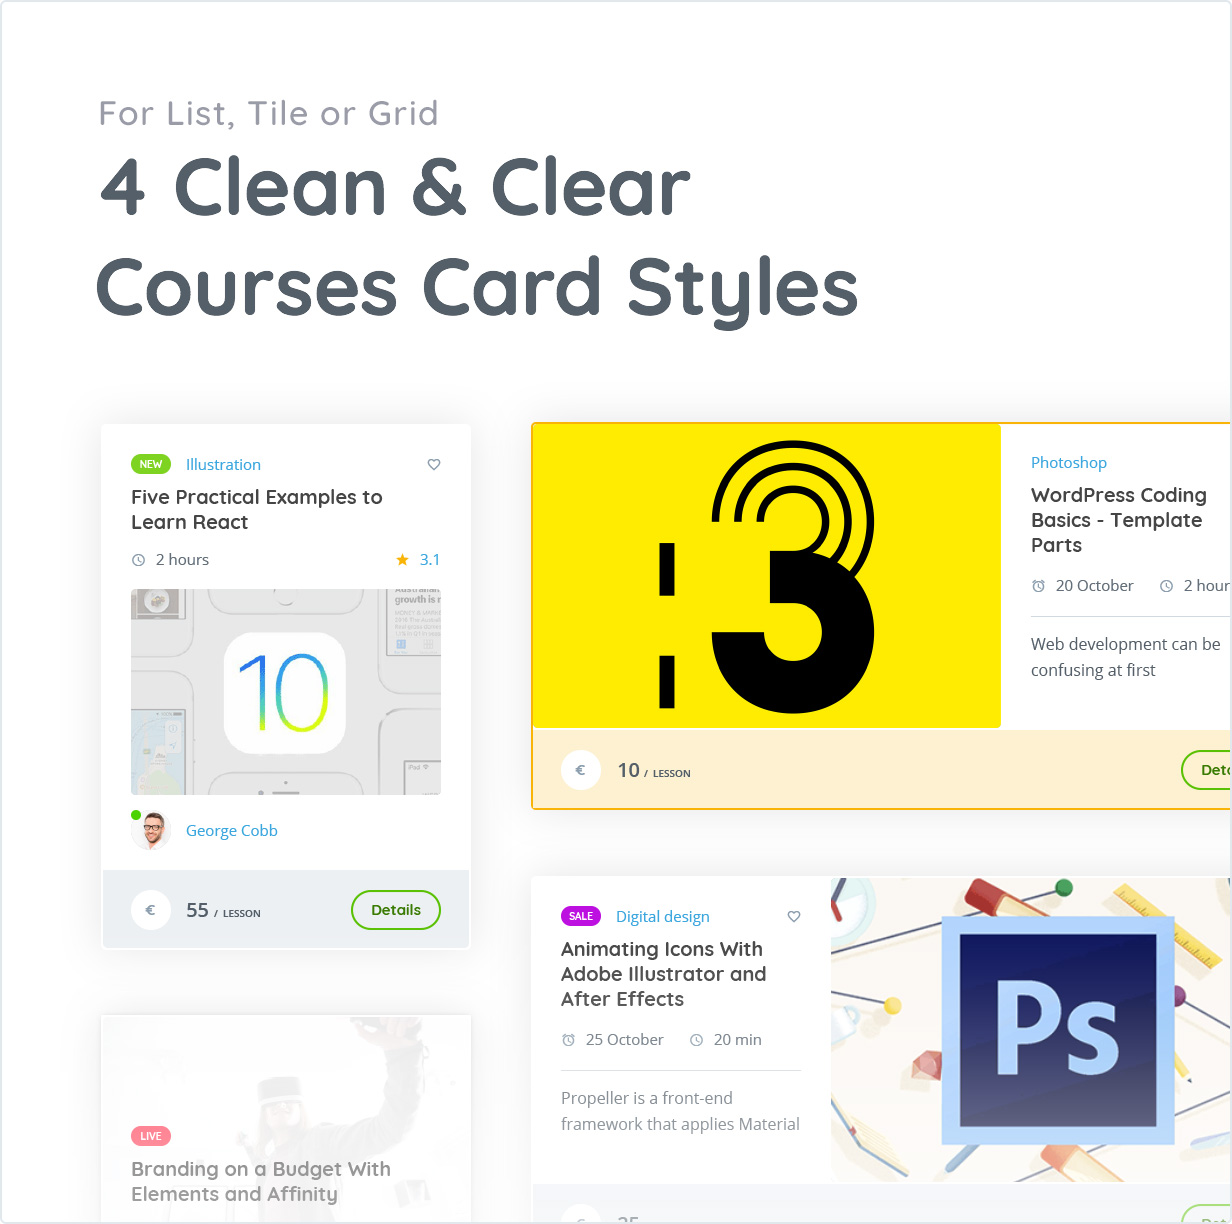 4 Clean and Clear courses Card Styles